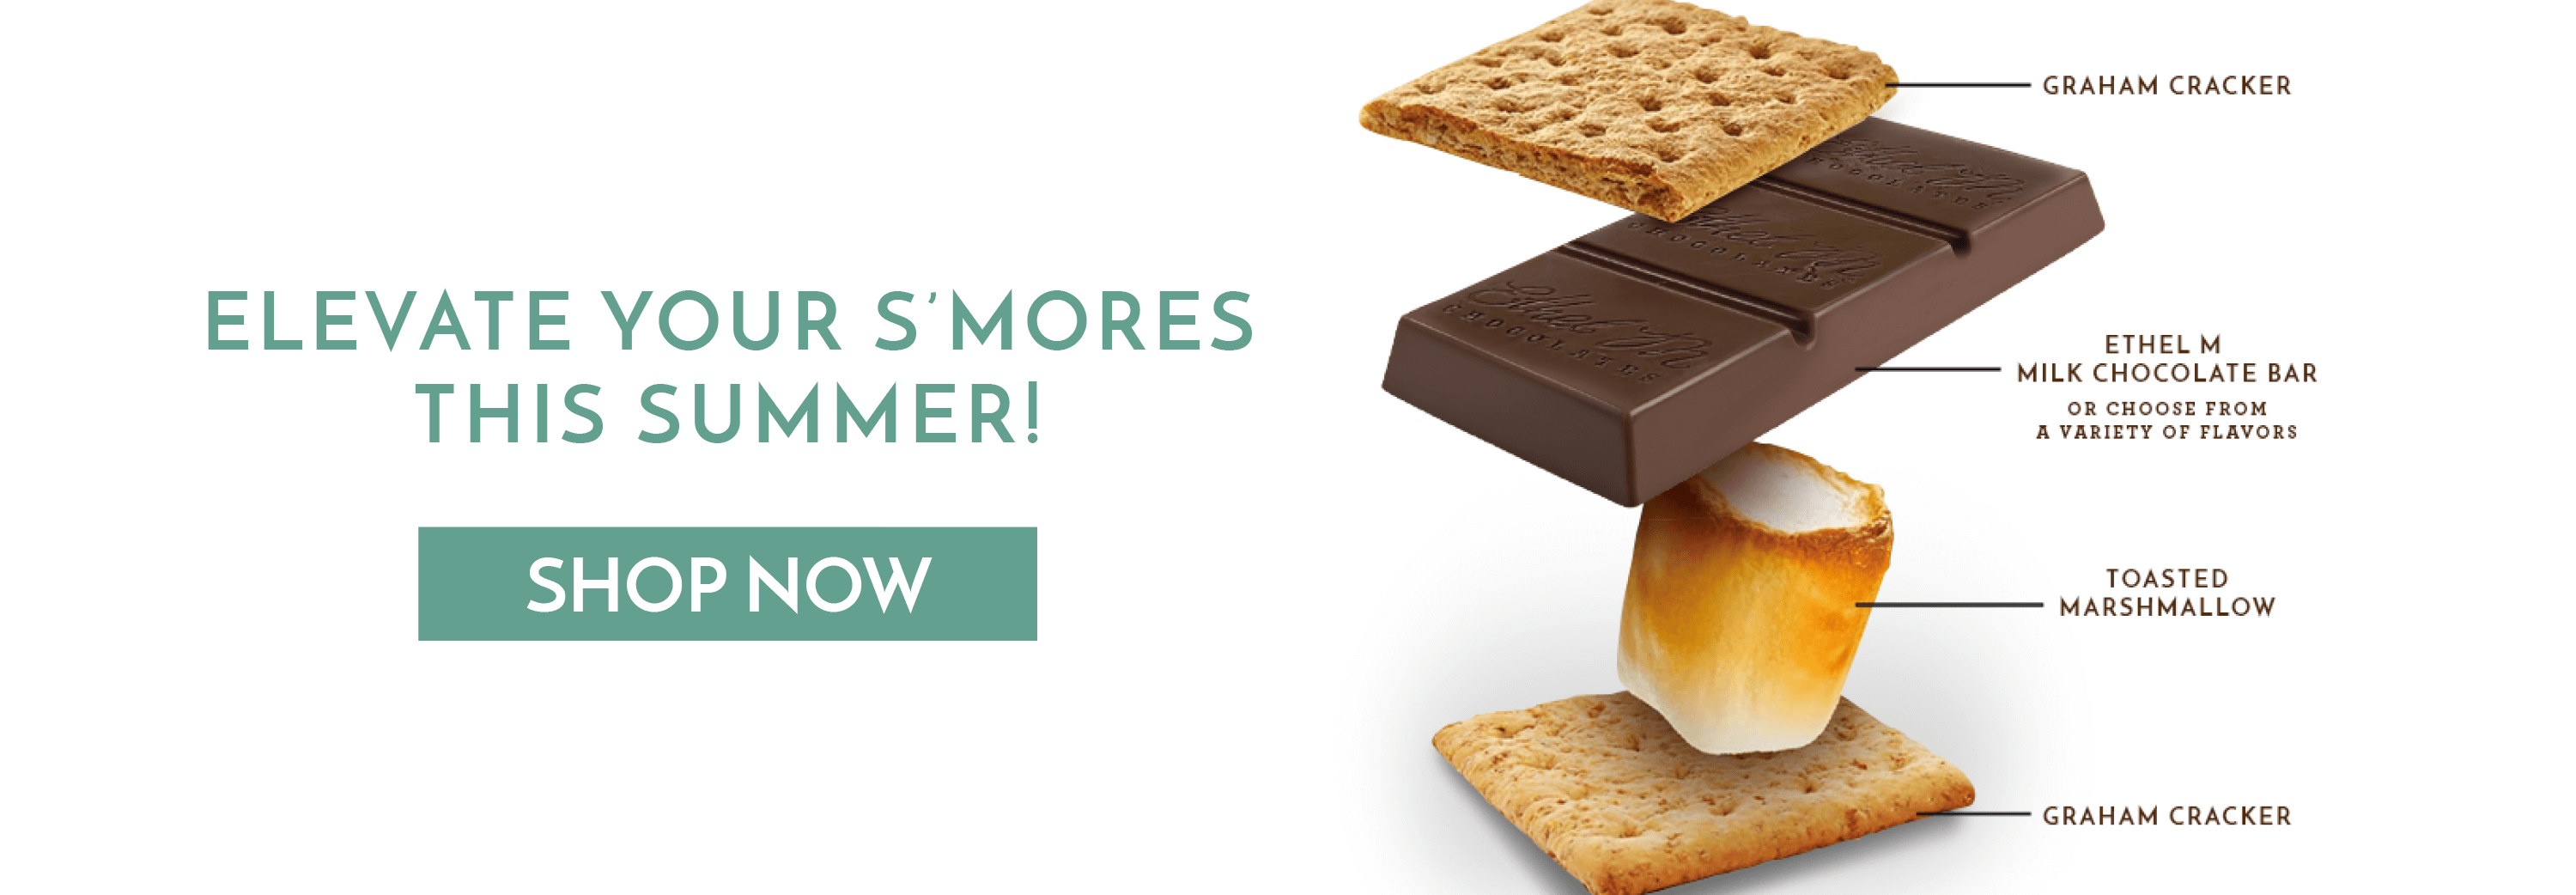 Elevate your s'mores with our milk chocolate bars